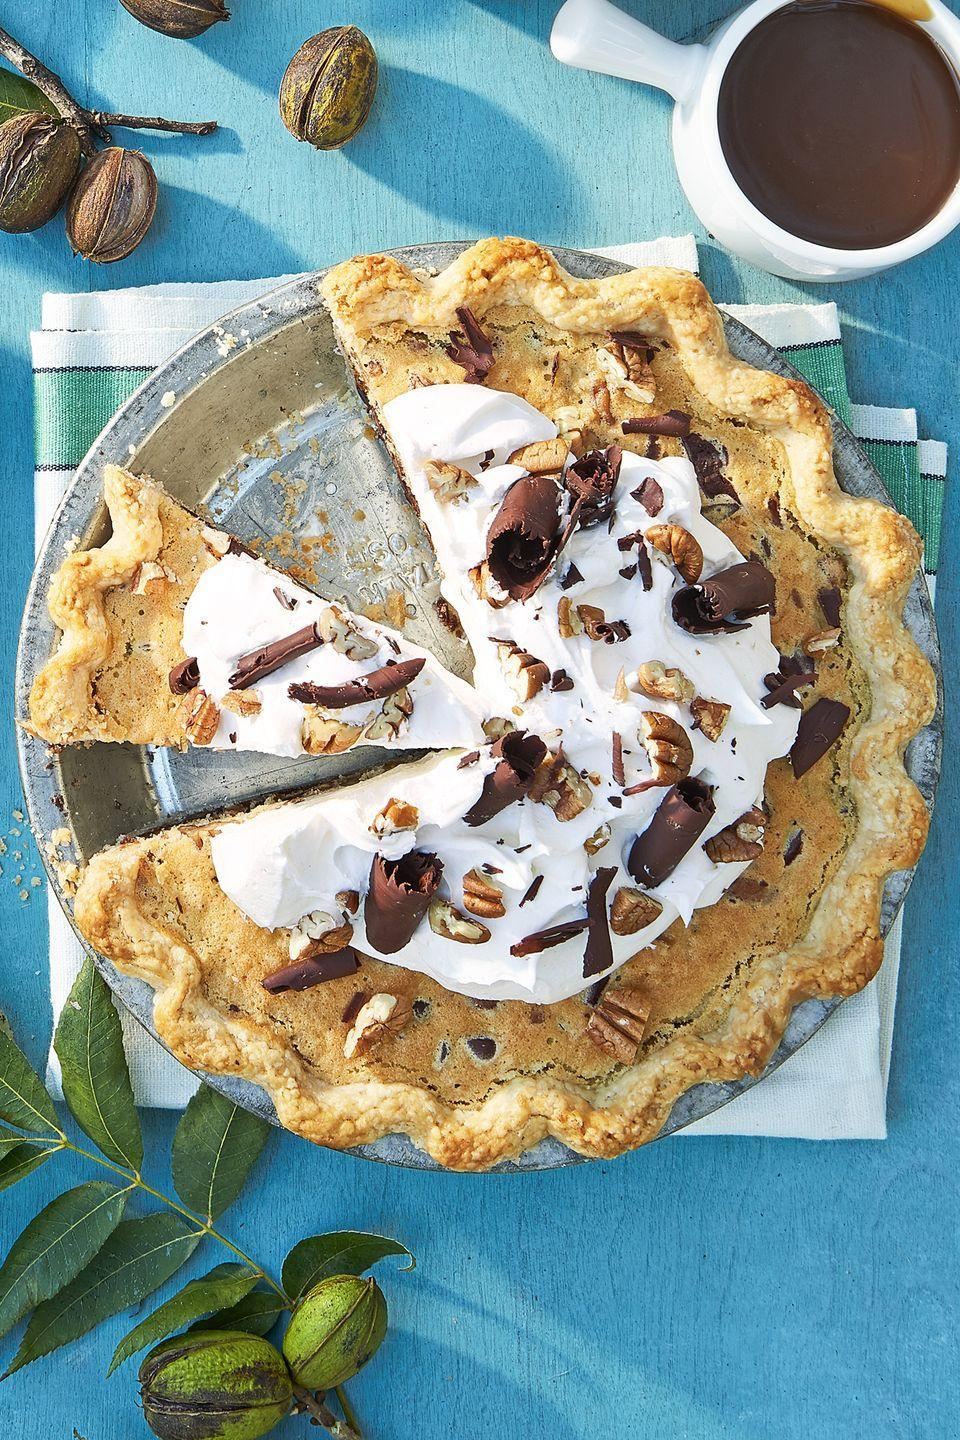 """<p>Top this boozy pecan pie with a heavy dollop of whipped cream and chocolate shavings. </p><p><strong><a href=""""https://www.countryliving.com/food-drinks/recipes/a45306/bourbon-pecan-pie-recipe/"""" rel=""""nofollow noopener"""" target=""""_blank"""" data-ylk=""""slk:Get the recipe"""" class=""""link rapid-noclick-resp"""">Get the recipe</a>.</strong> </p>"""